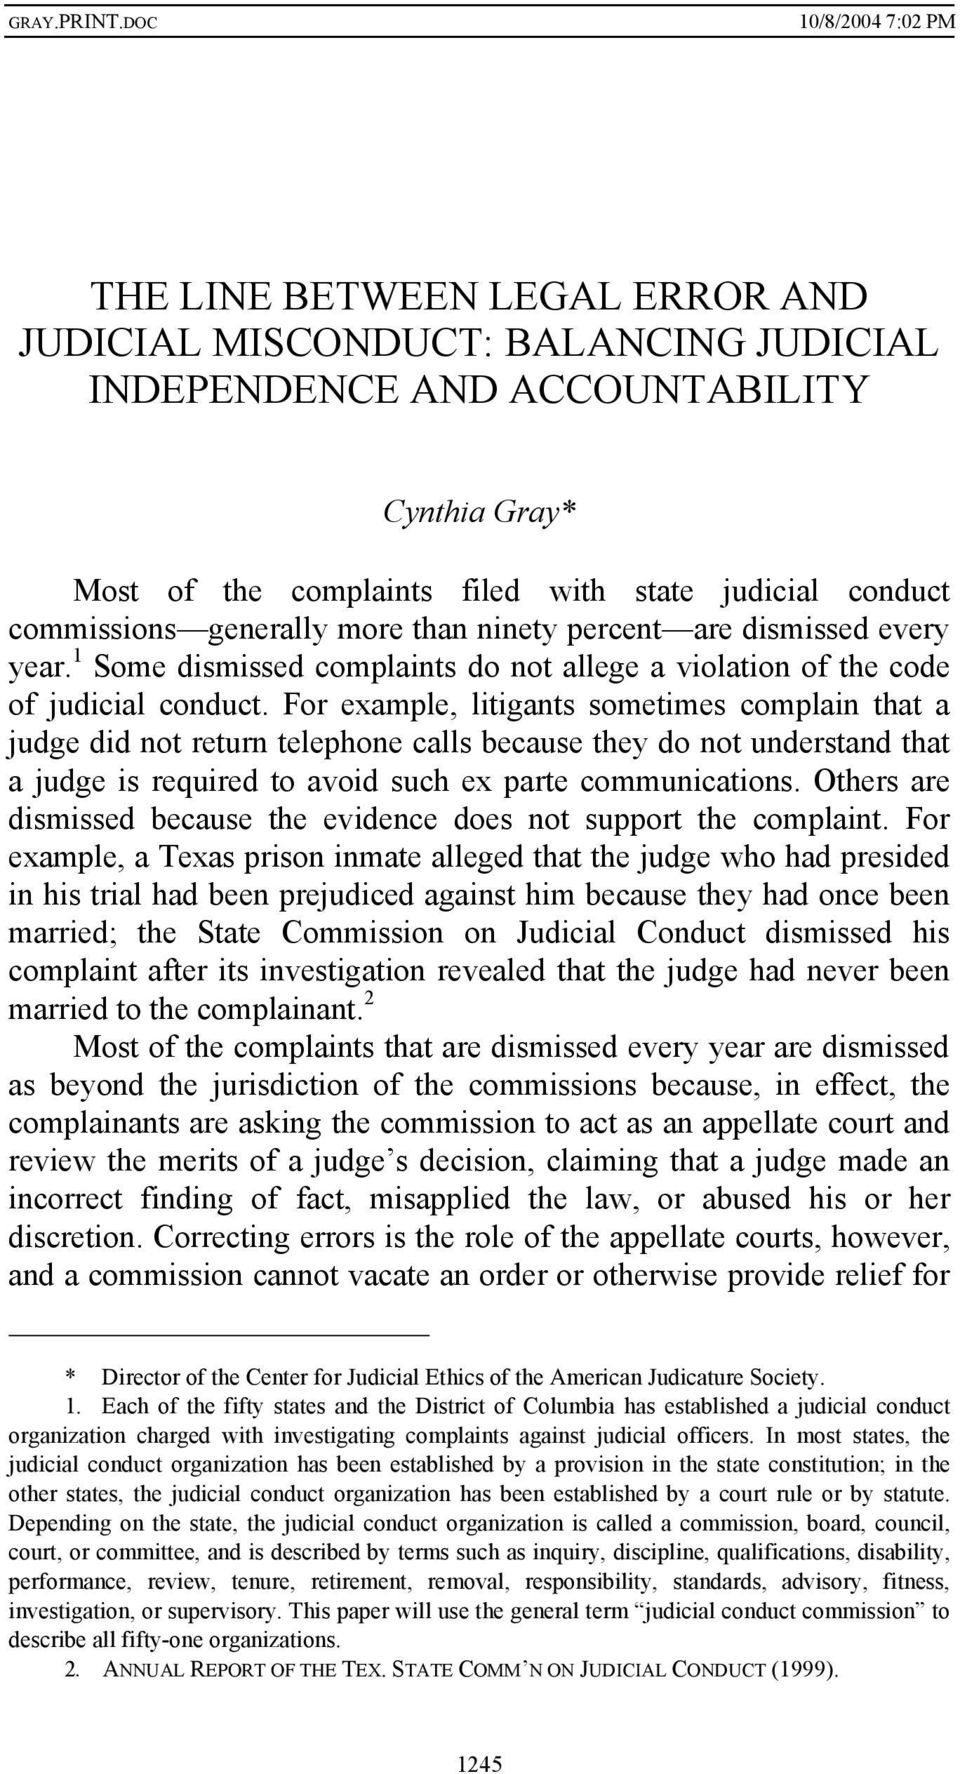 For example, litigants sometimes complain that a judge did not return telephone calls because they do not understand that a judge is required to avoid such ex parte communications.